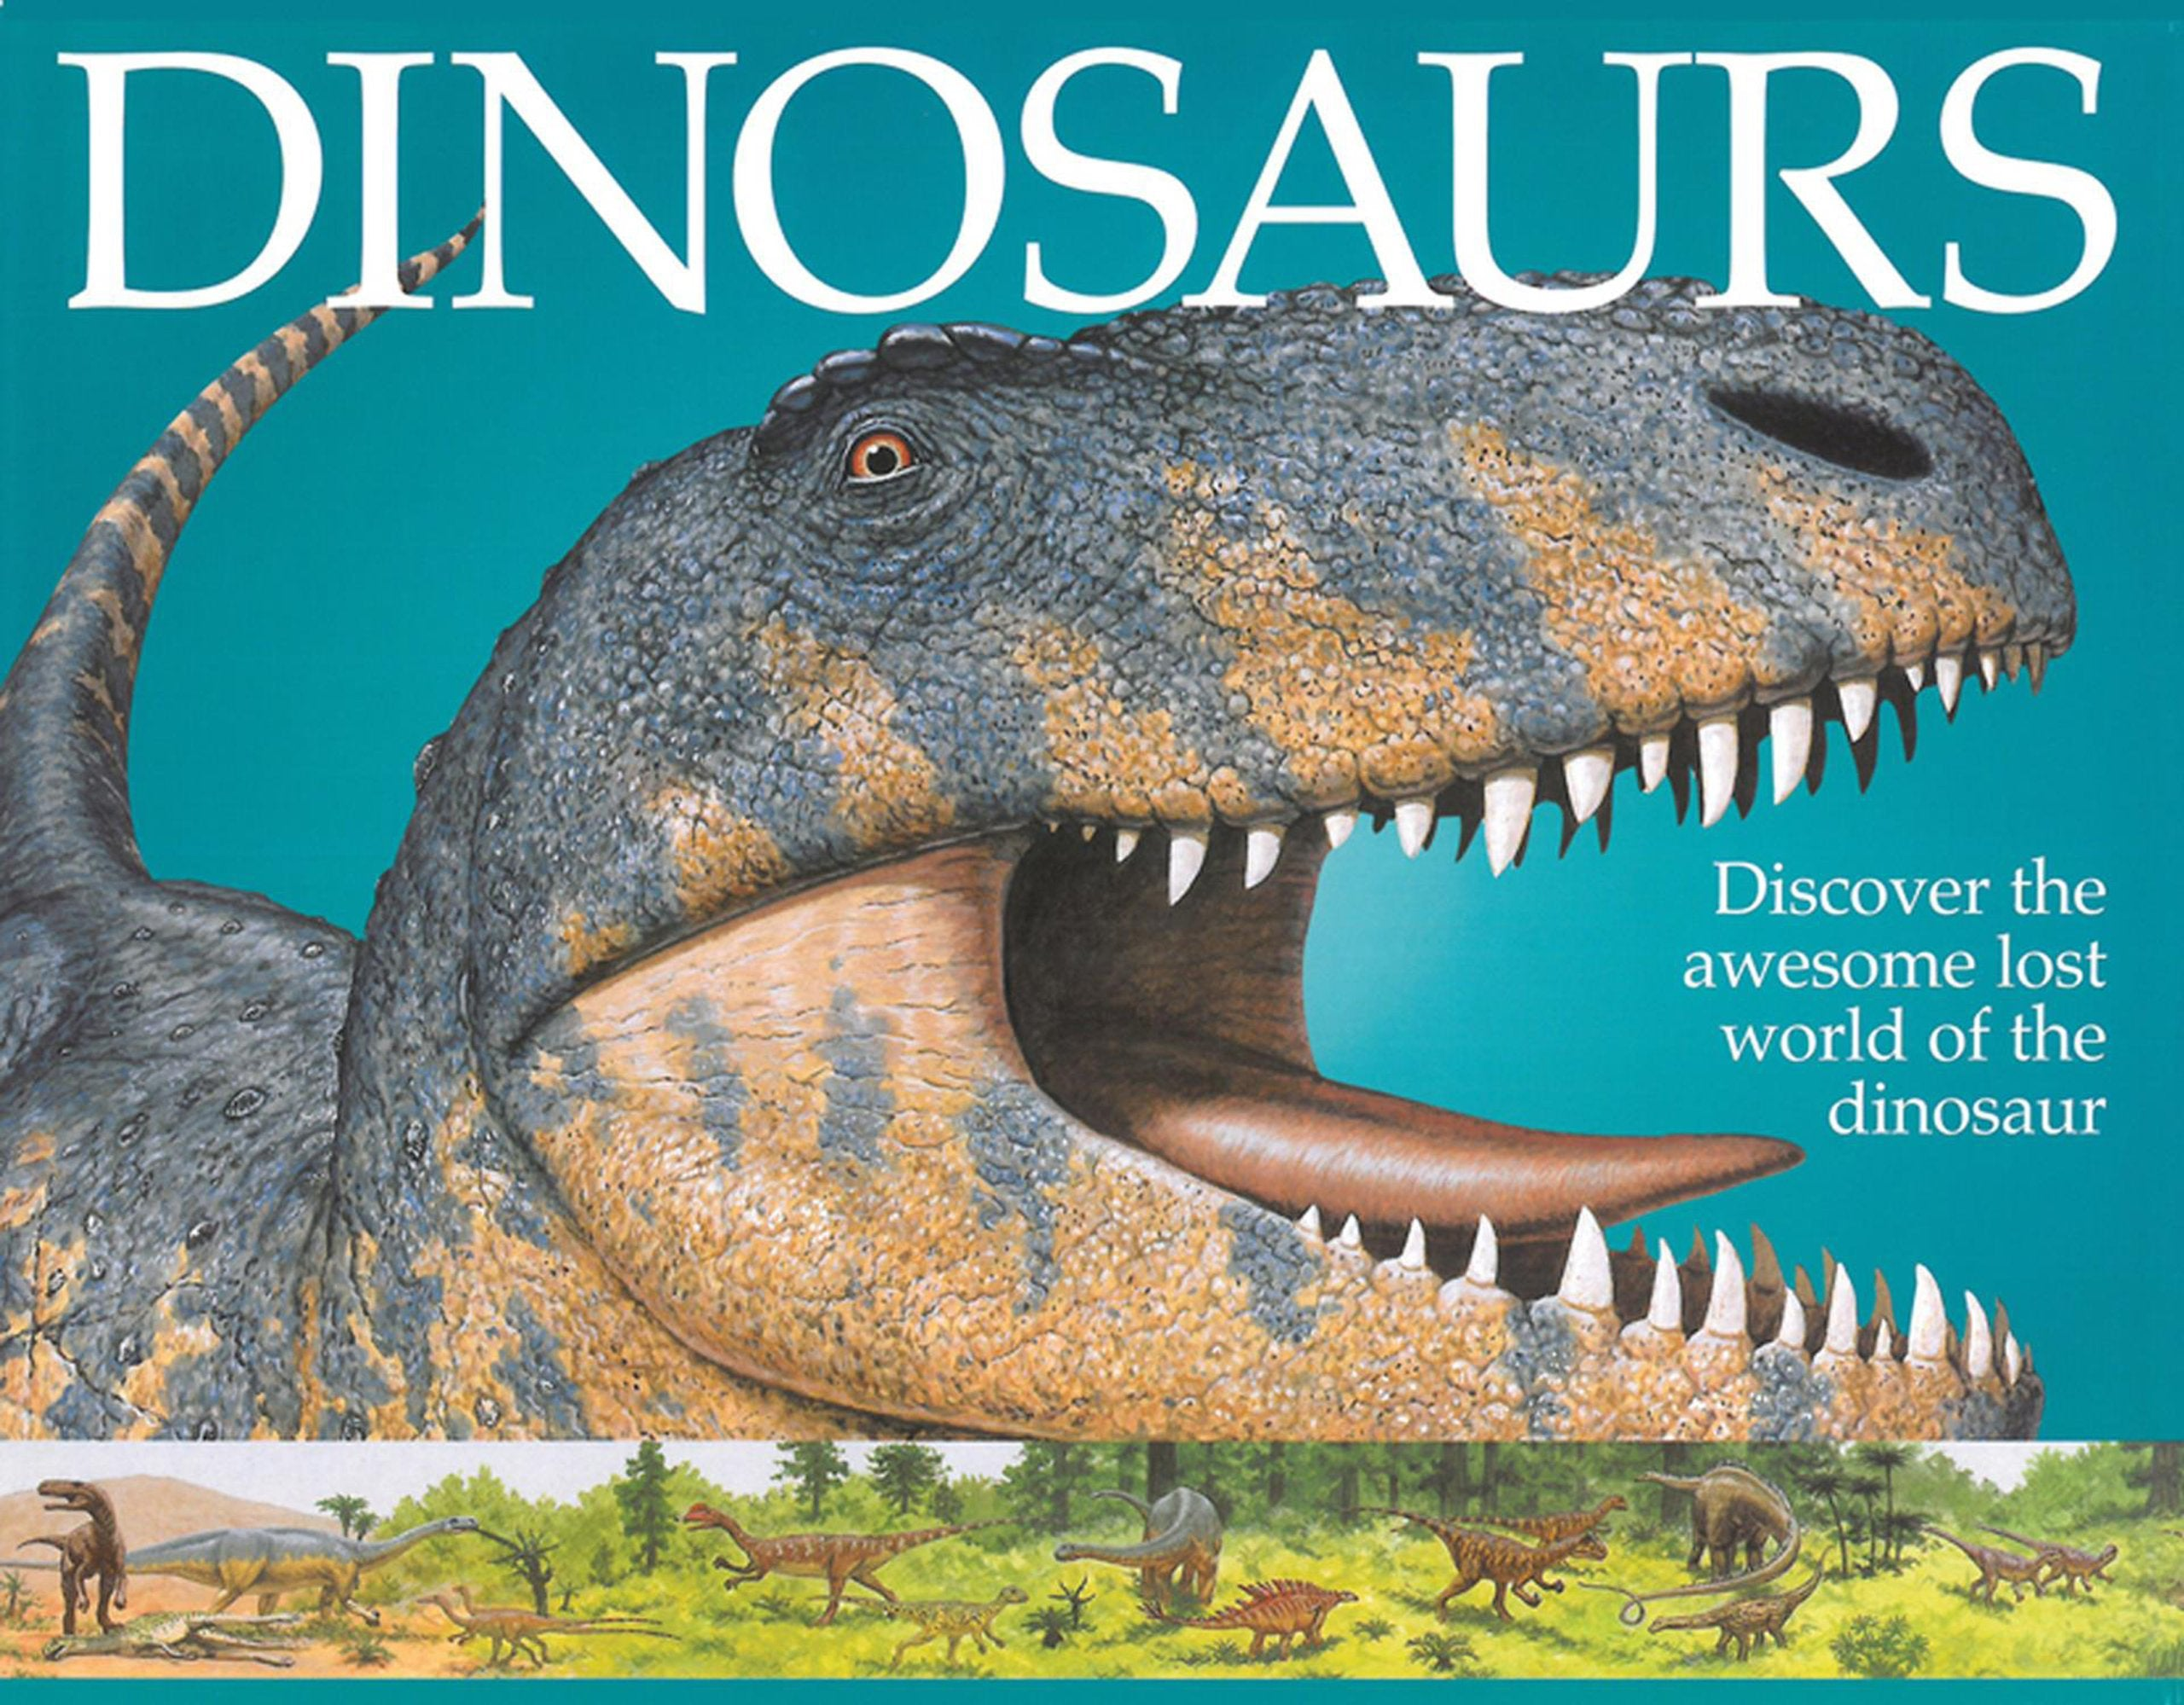 Dinosaurs: Discover the Awesome Lost World of the Dinosaur